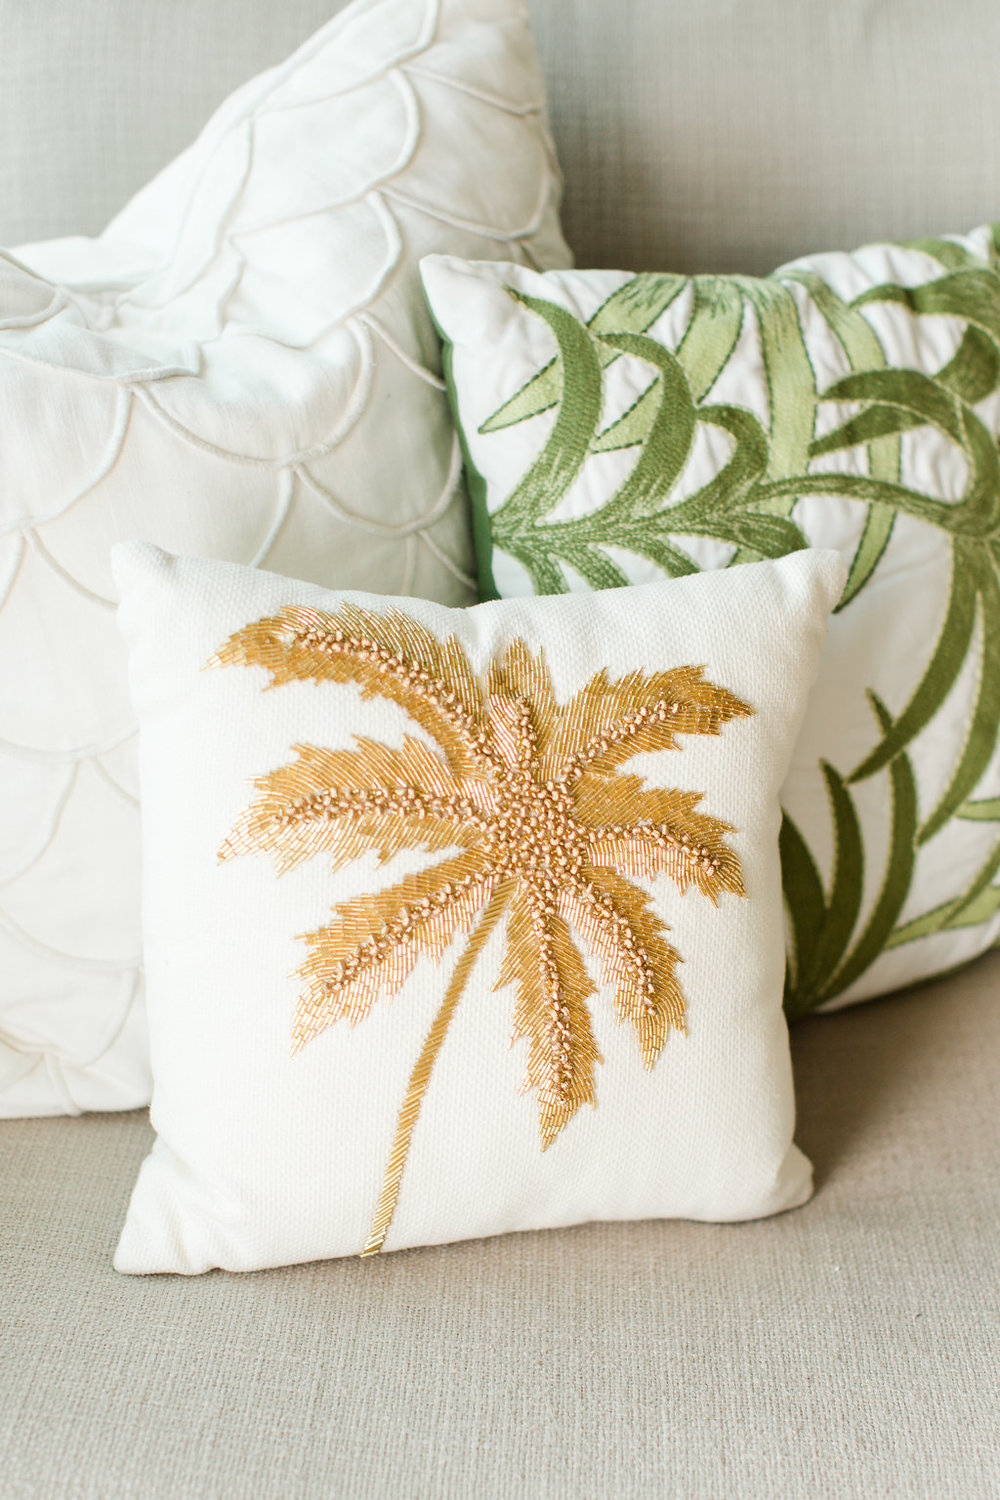 Mostess_Styled_Pillows